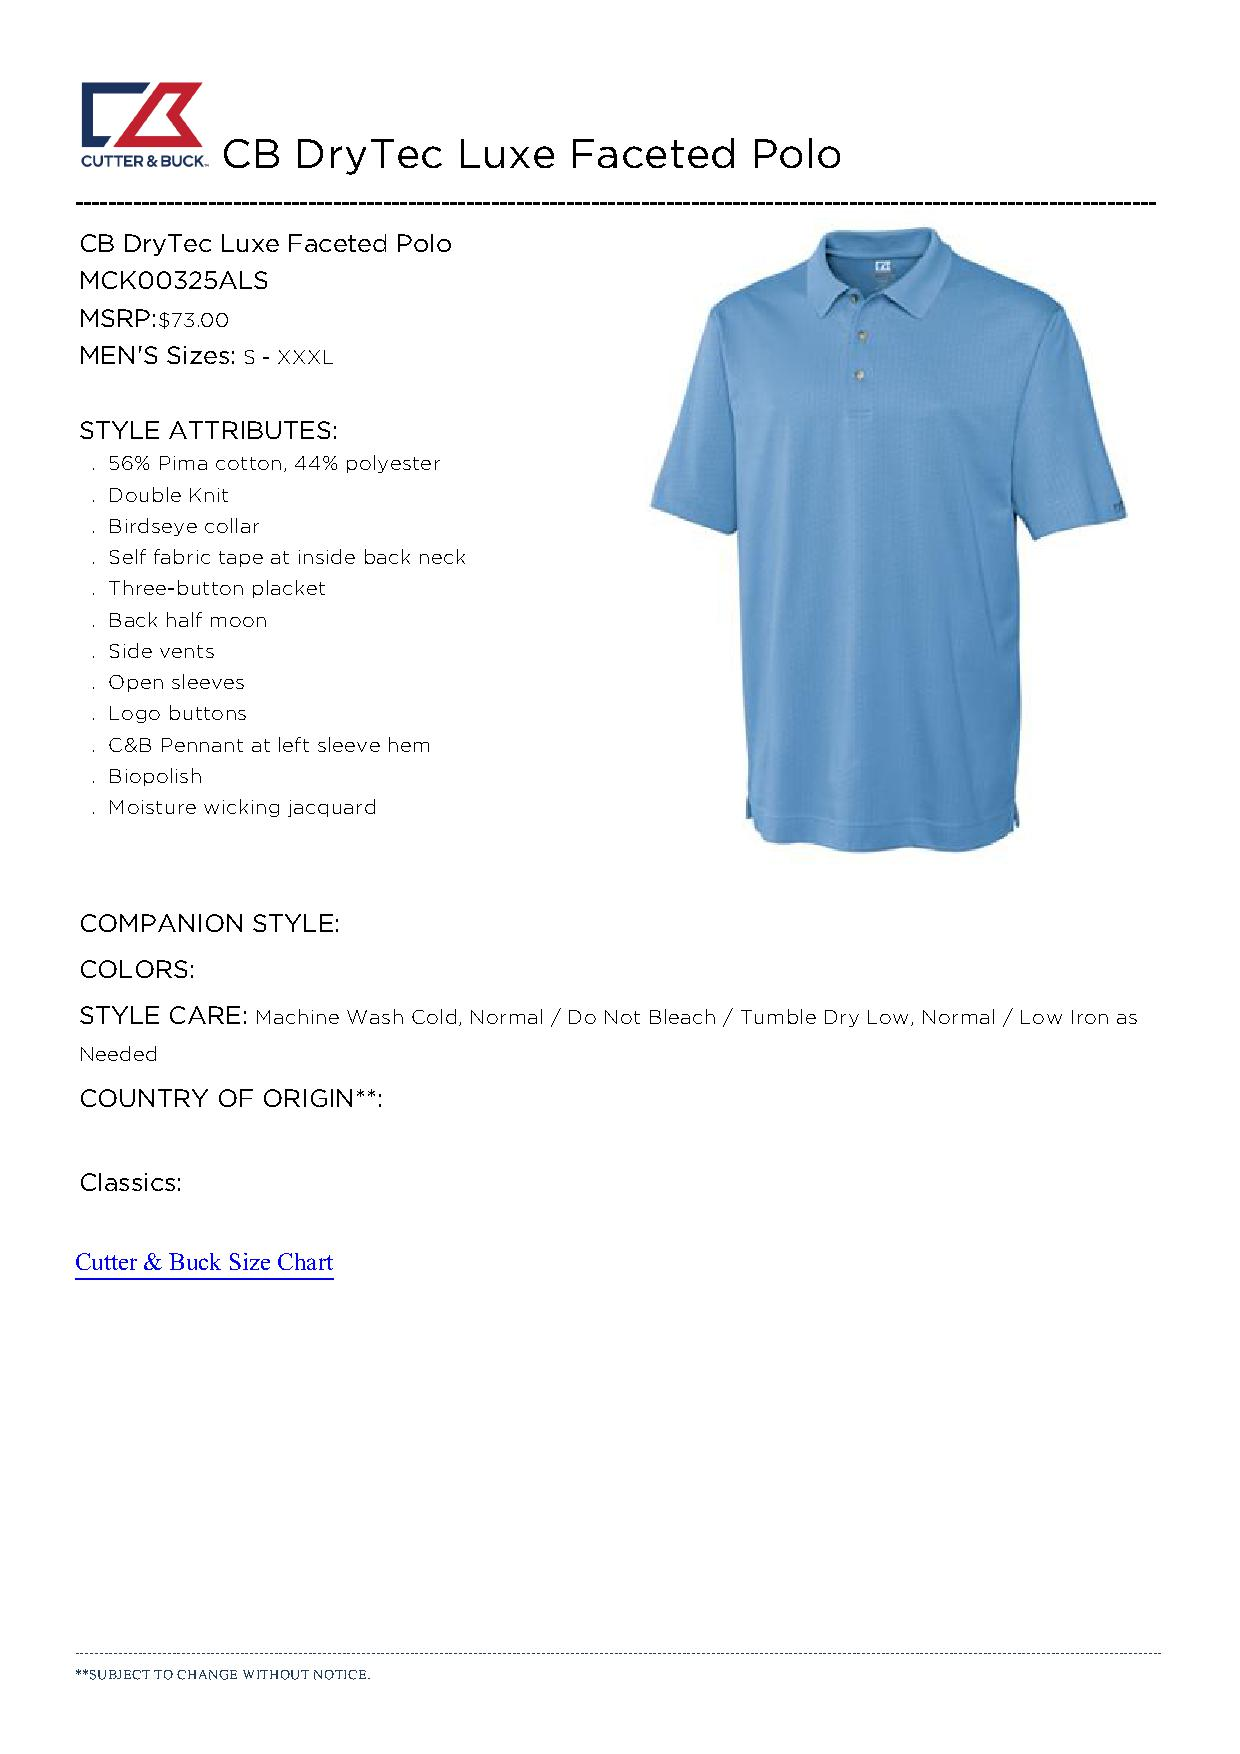 Cutter buck mck00325 men 39 s cb drytec luxe faceted polo for Cutter buck polo shirt size chart